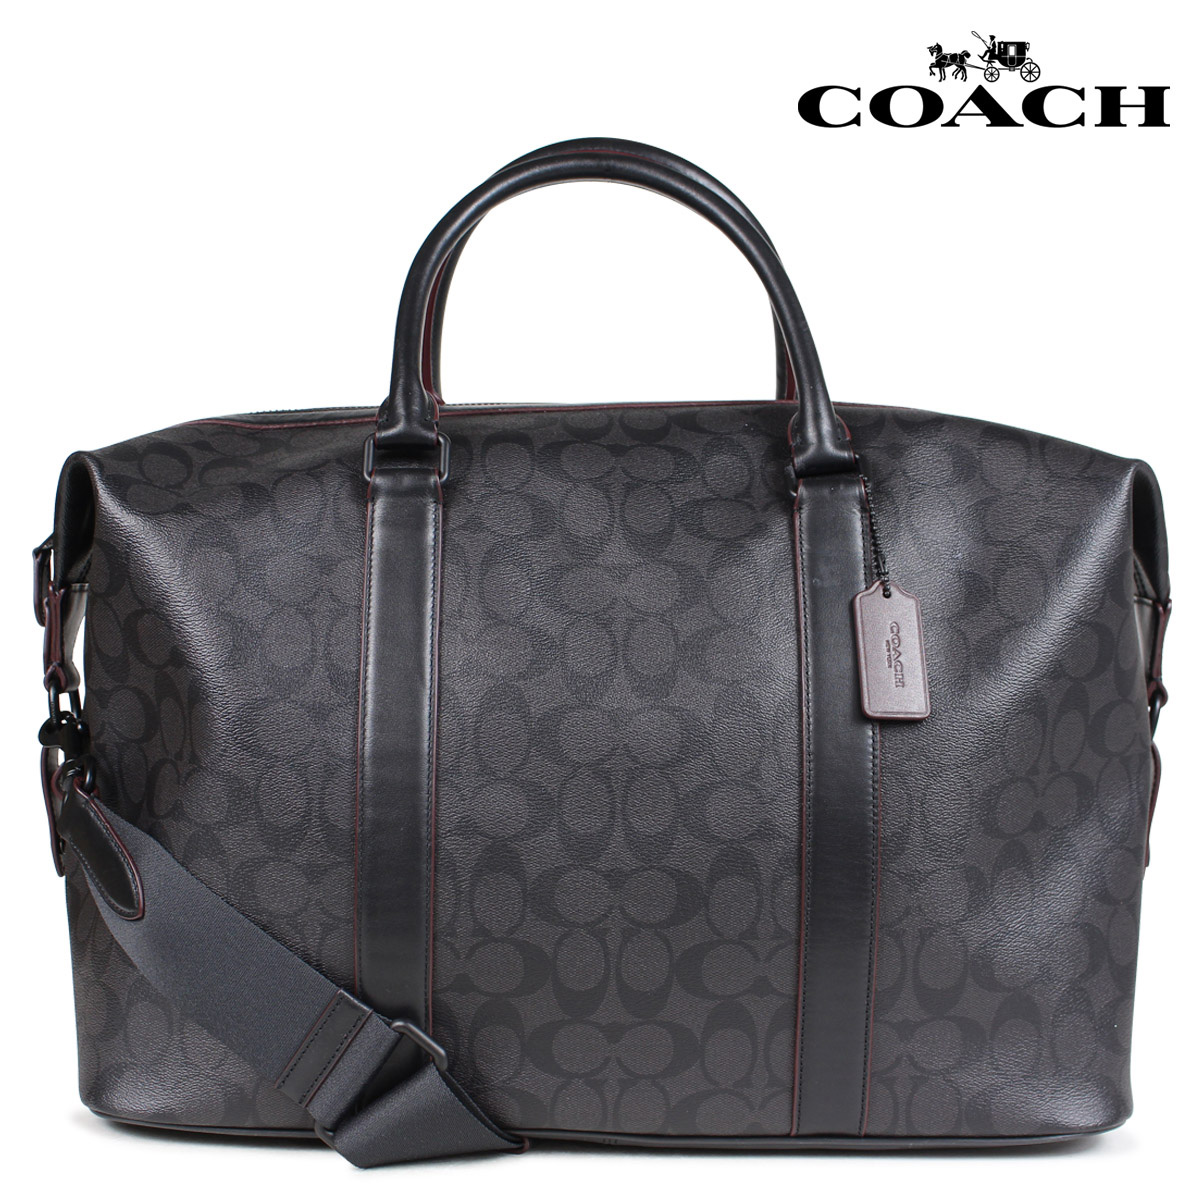 97dff688e31 Whats up Sports  COACH coach bag Boston bag men gap Dis black F23207 ...